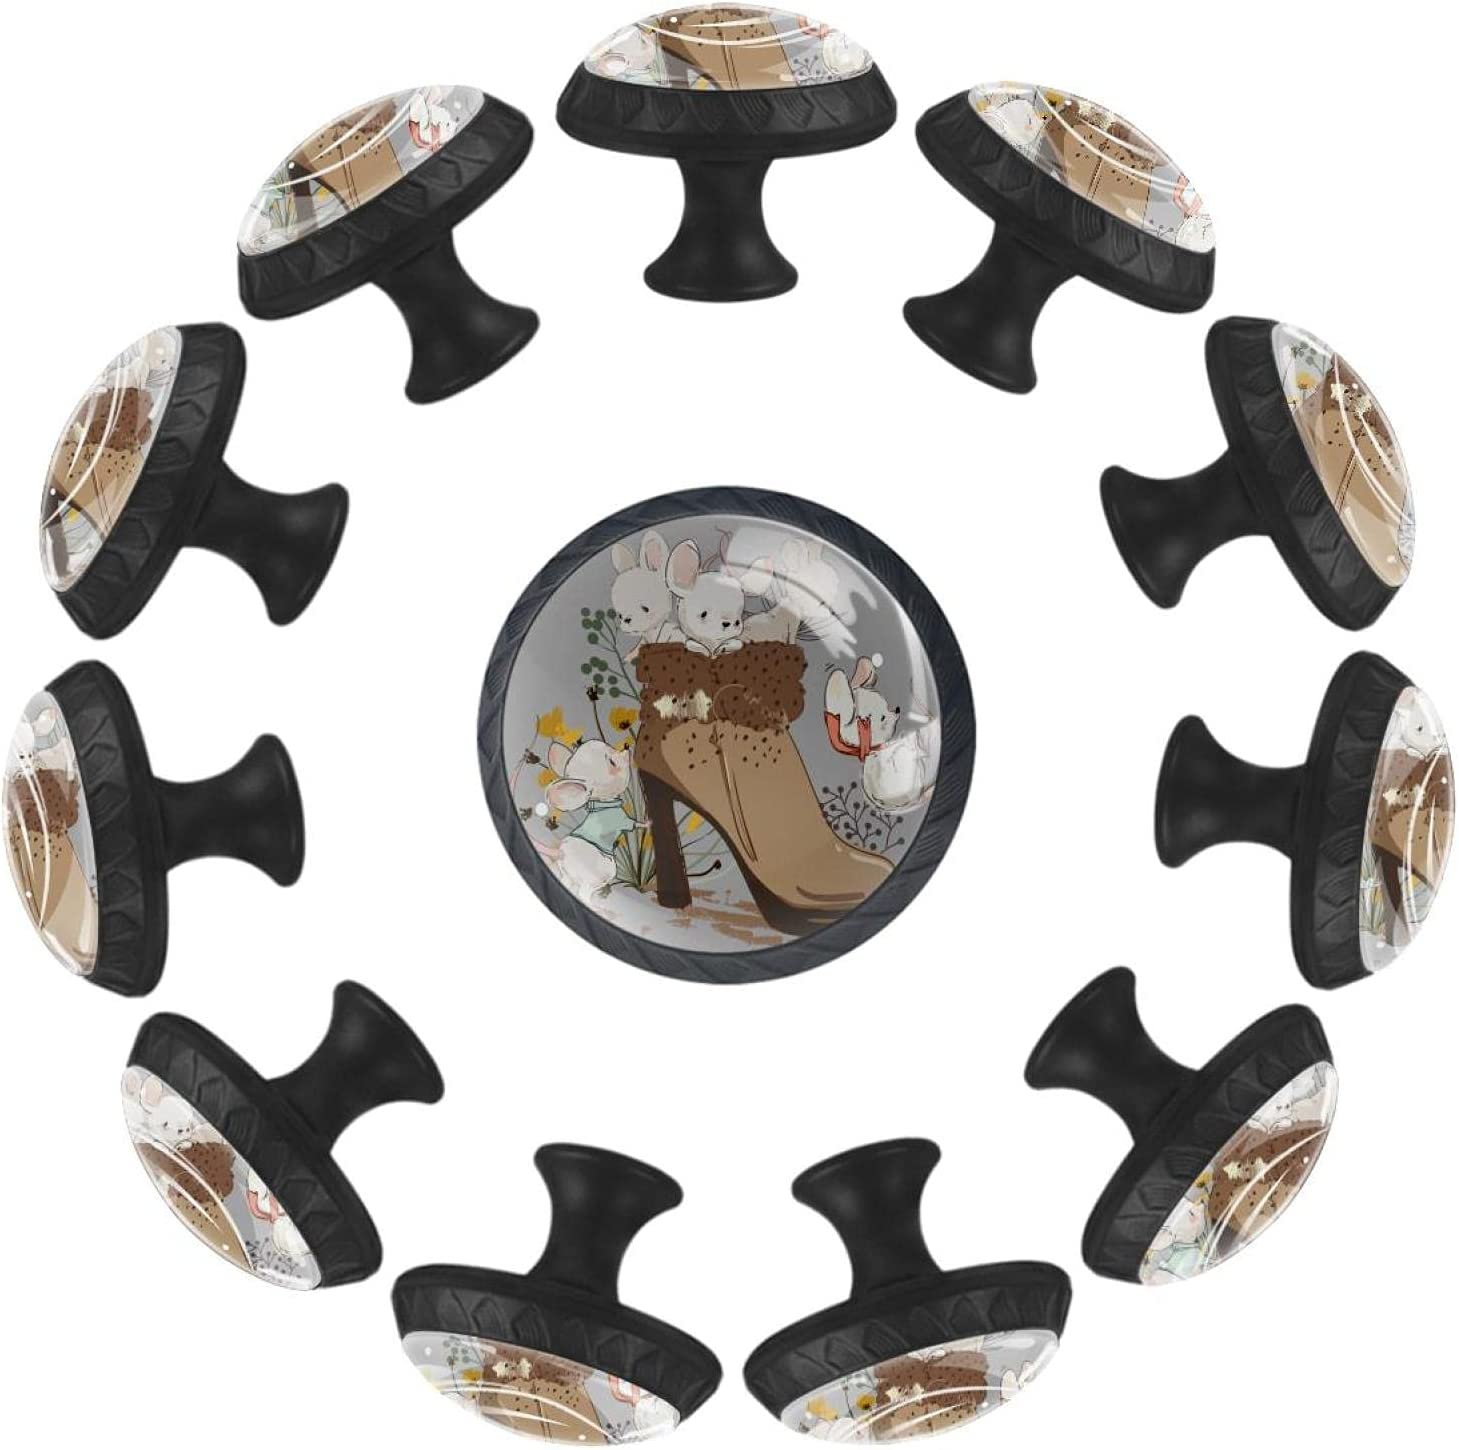 Cute Max 75% OFF Mouses in Max 77% OFF Boot 12PCS Round Cupboard Handle Drawer Pull Knob